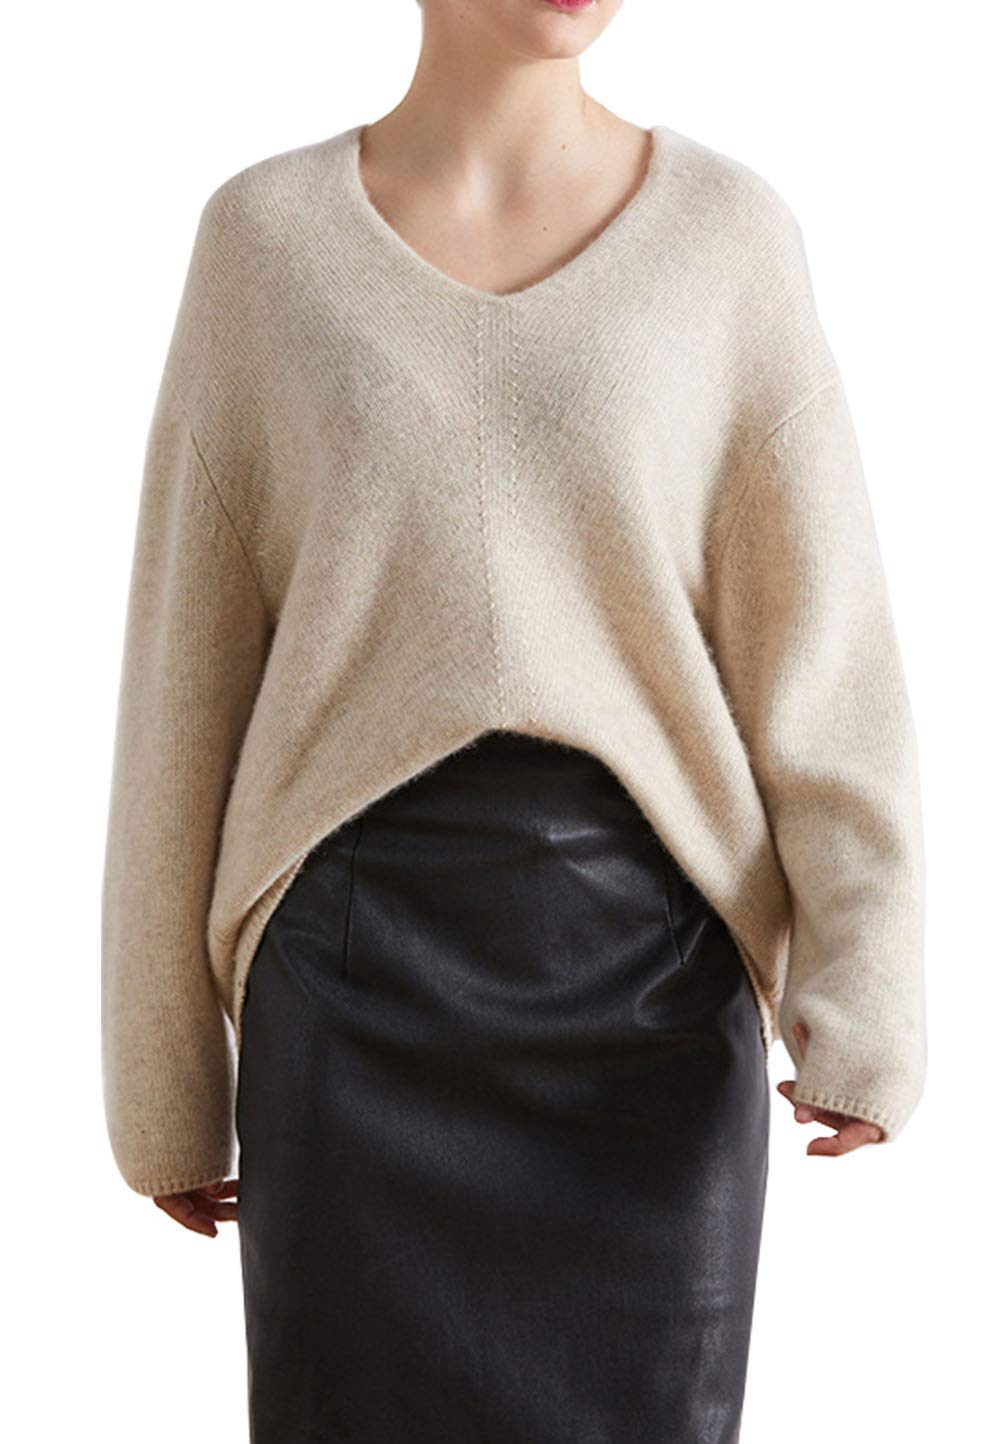 Womens Cashmere Solid Soft Cosy Loose Fit Irregular Thermal Chunky V Neck Sweater Tops Sweatshirt Khaki US 2-4